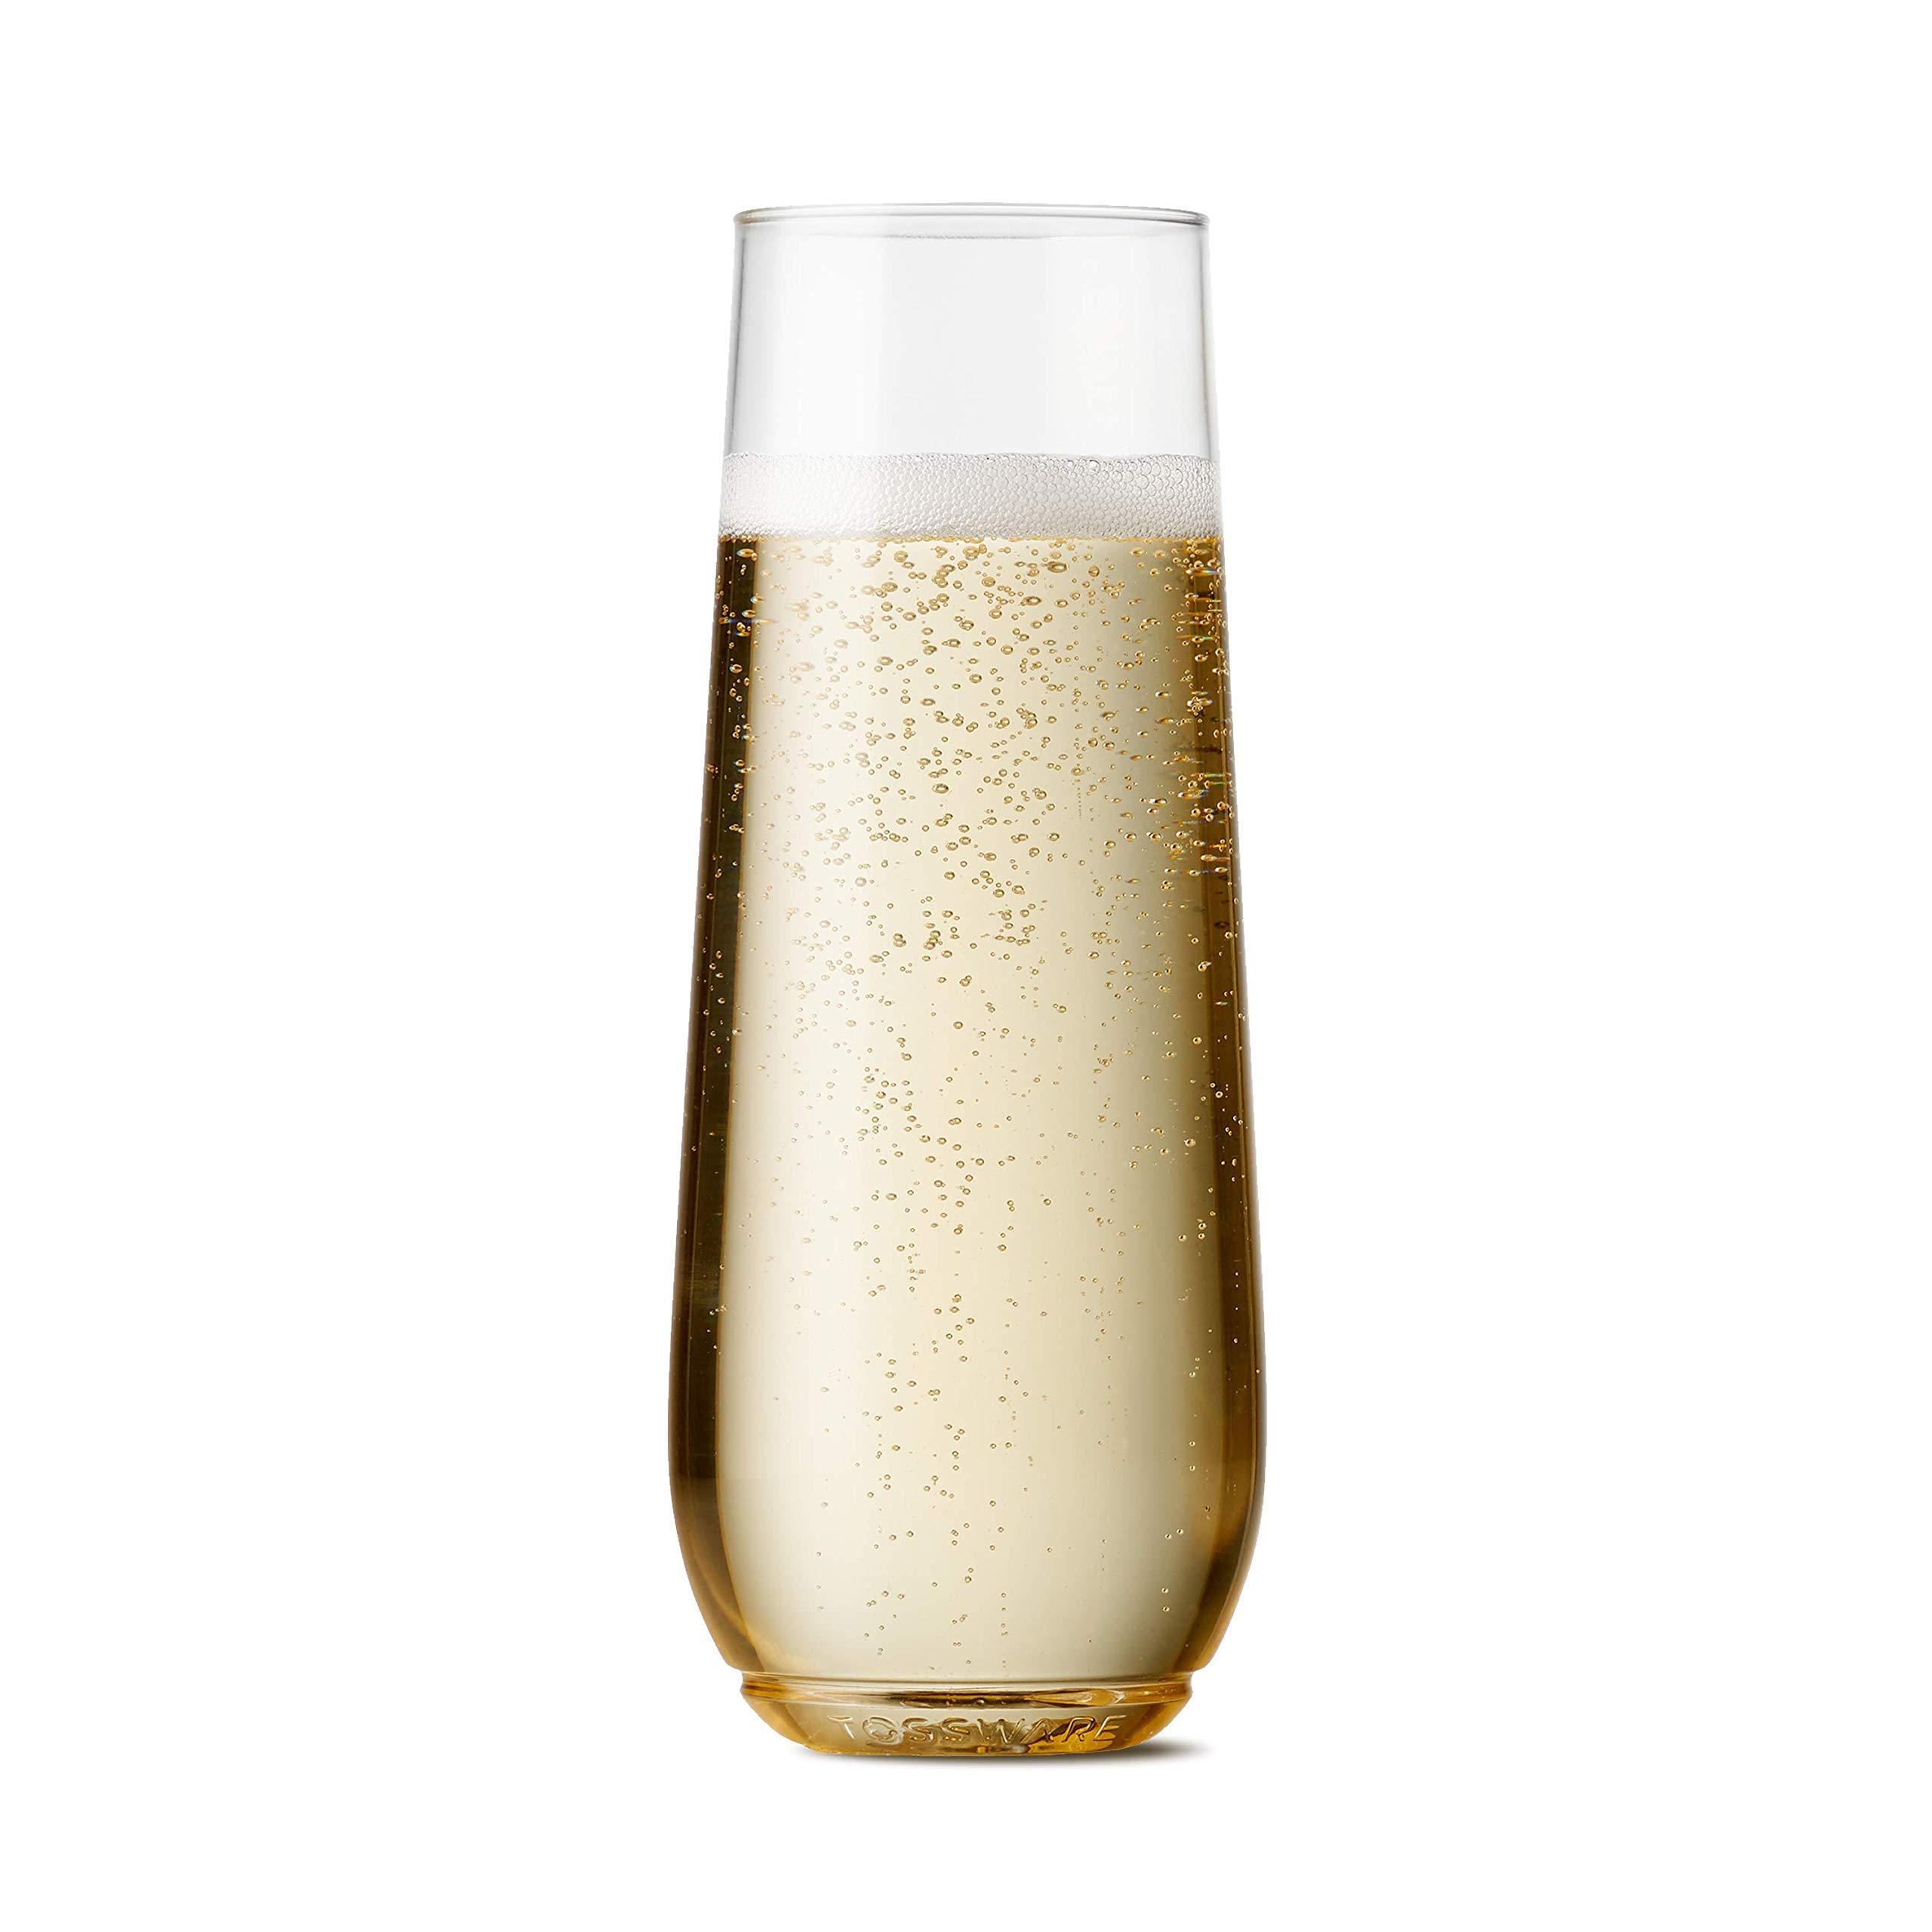 TOSSWARE 9oz Flute - recyclable champagne plastic cup - SET OF 48 - stemless, shatterproof and BPA-free flute glasses (Renewed)